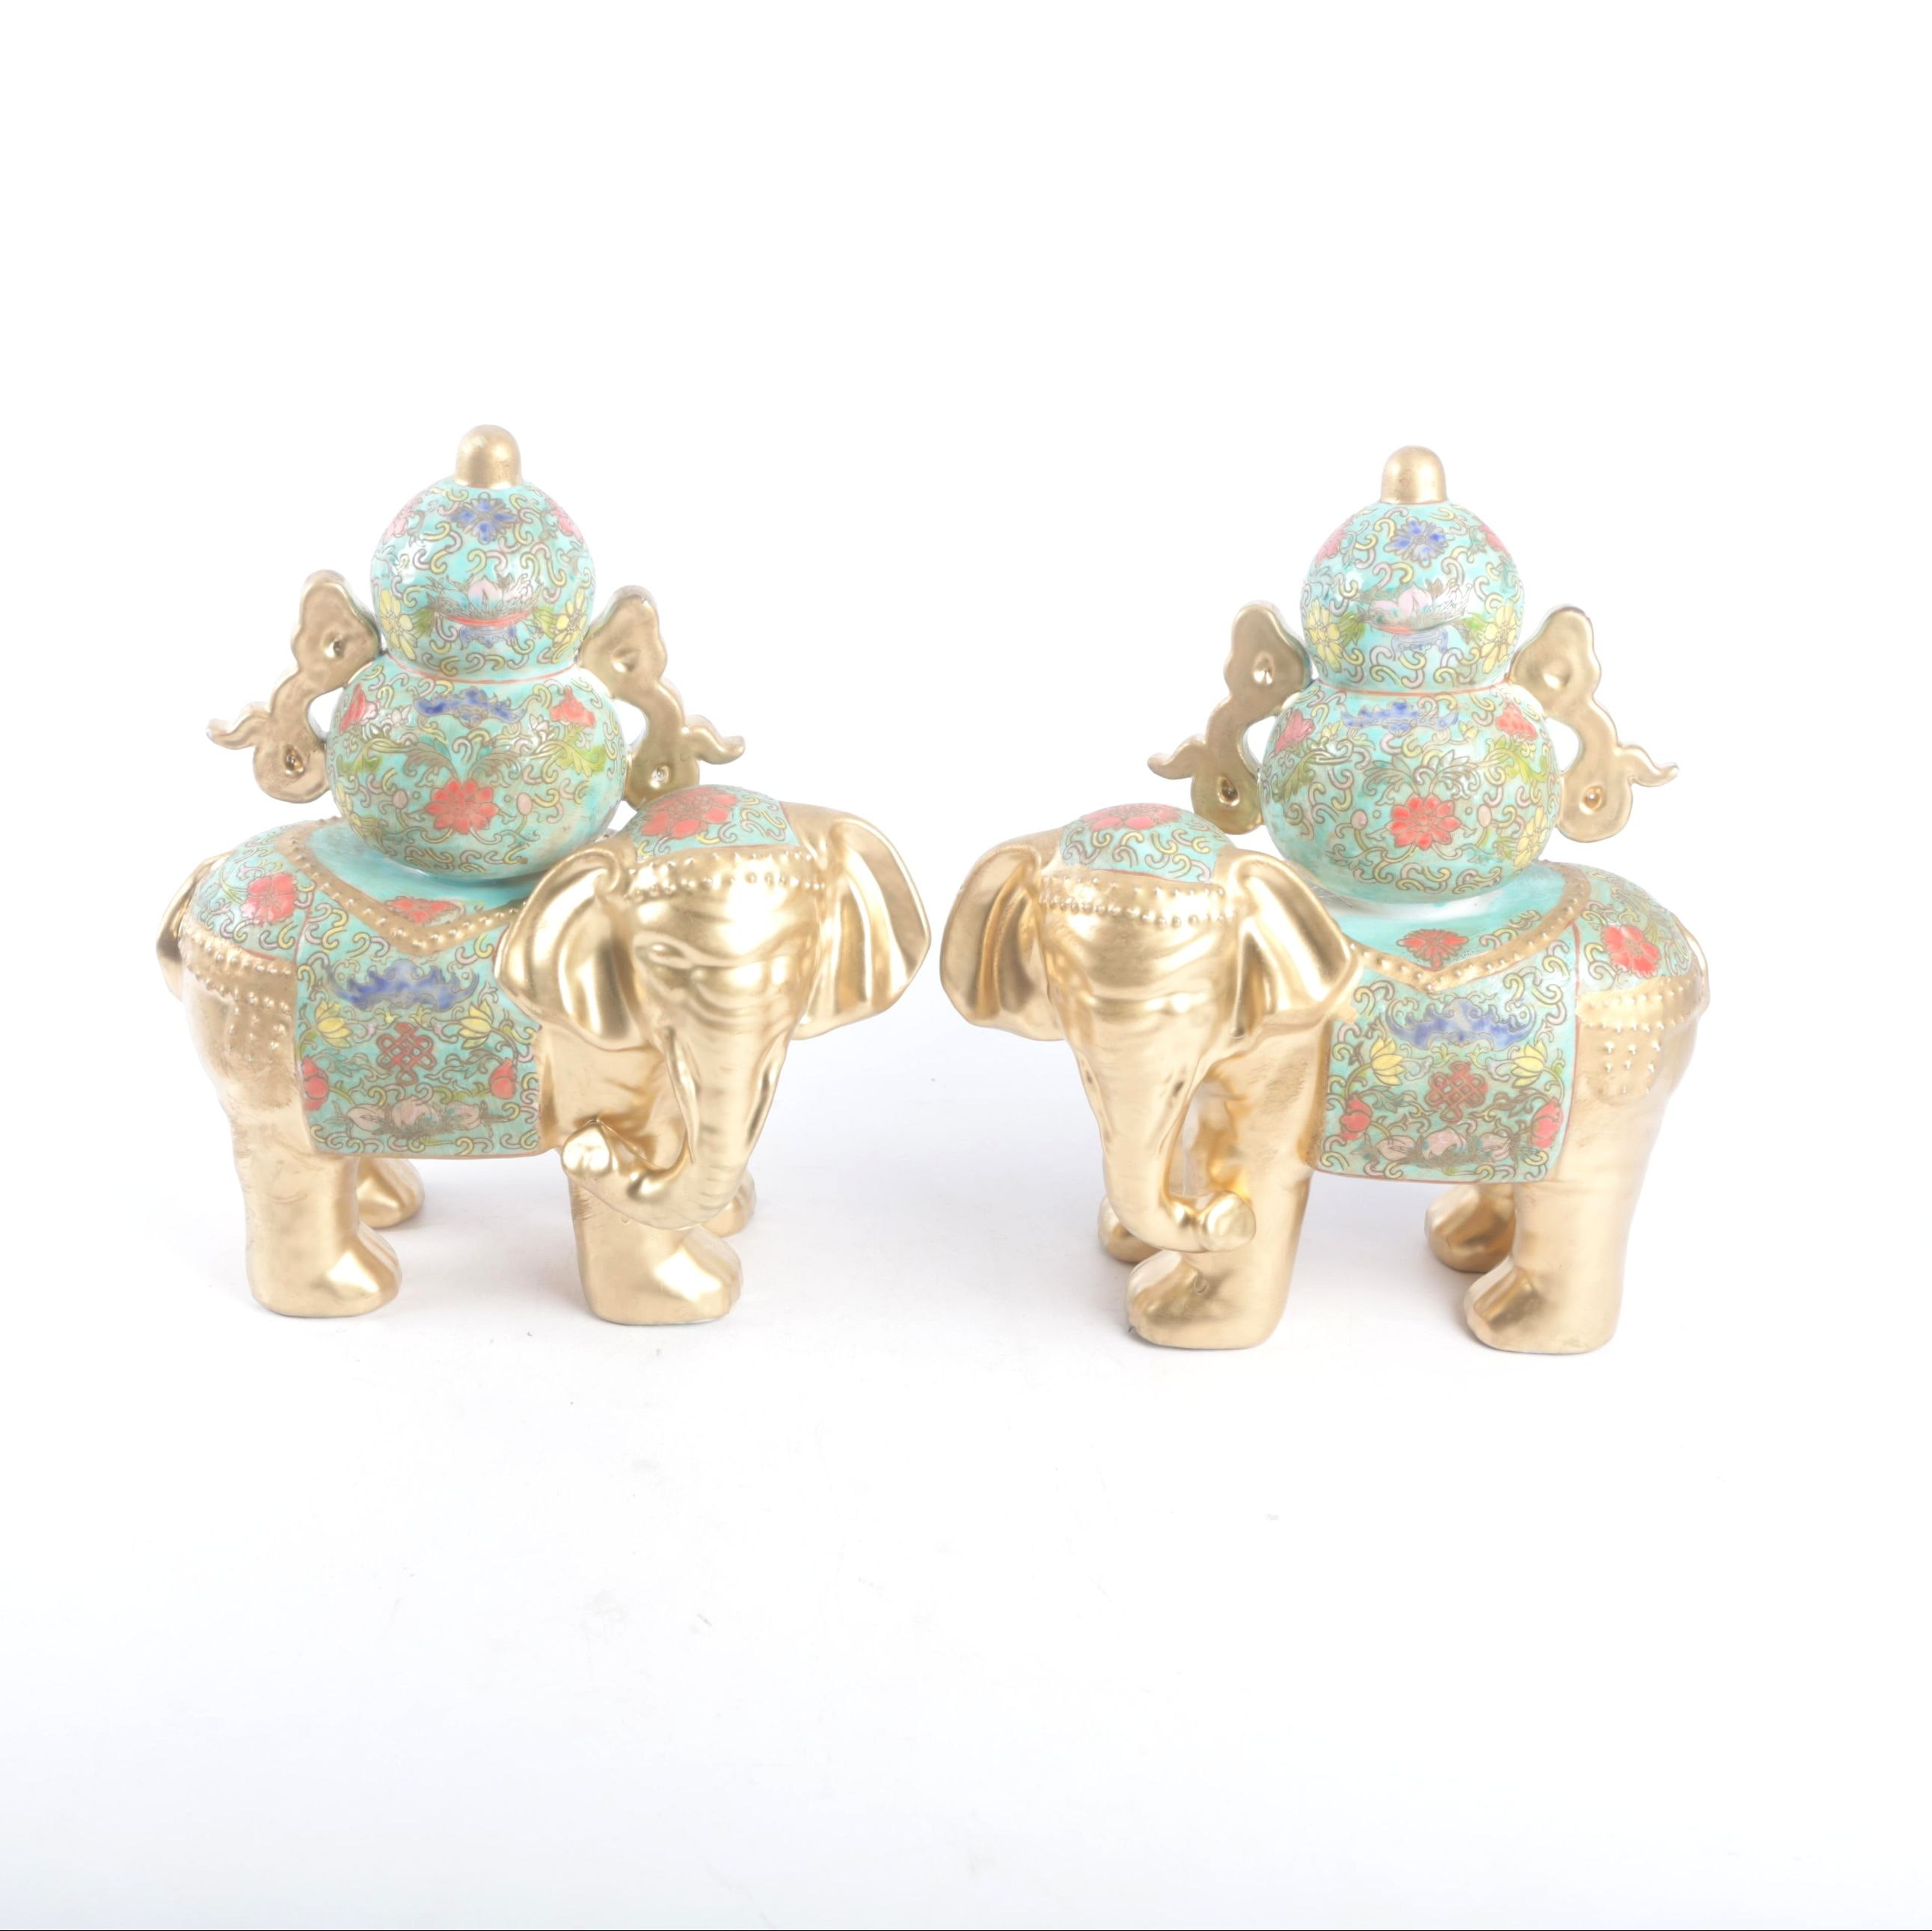 Chinese Floral Themed Porcelain Elephant Figurines with Gilt Embellishments